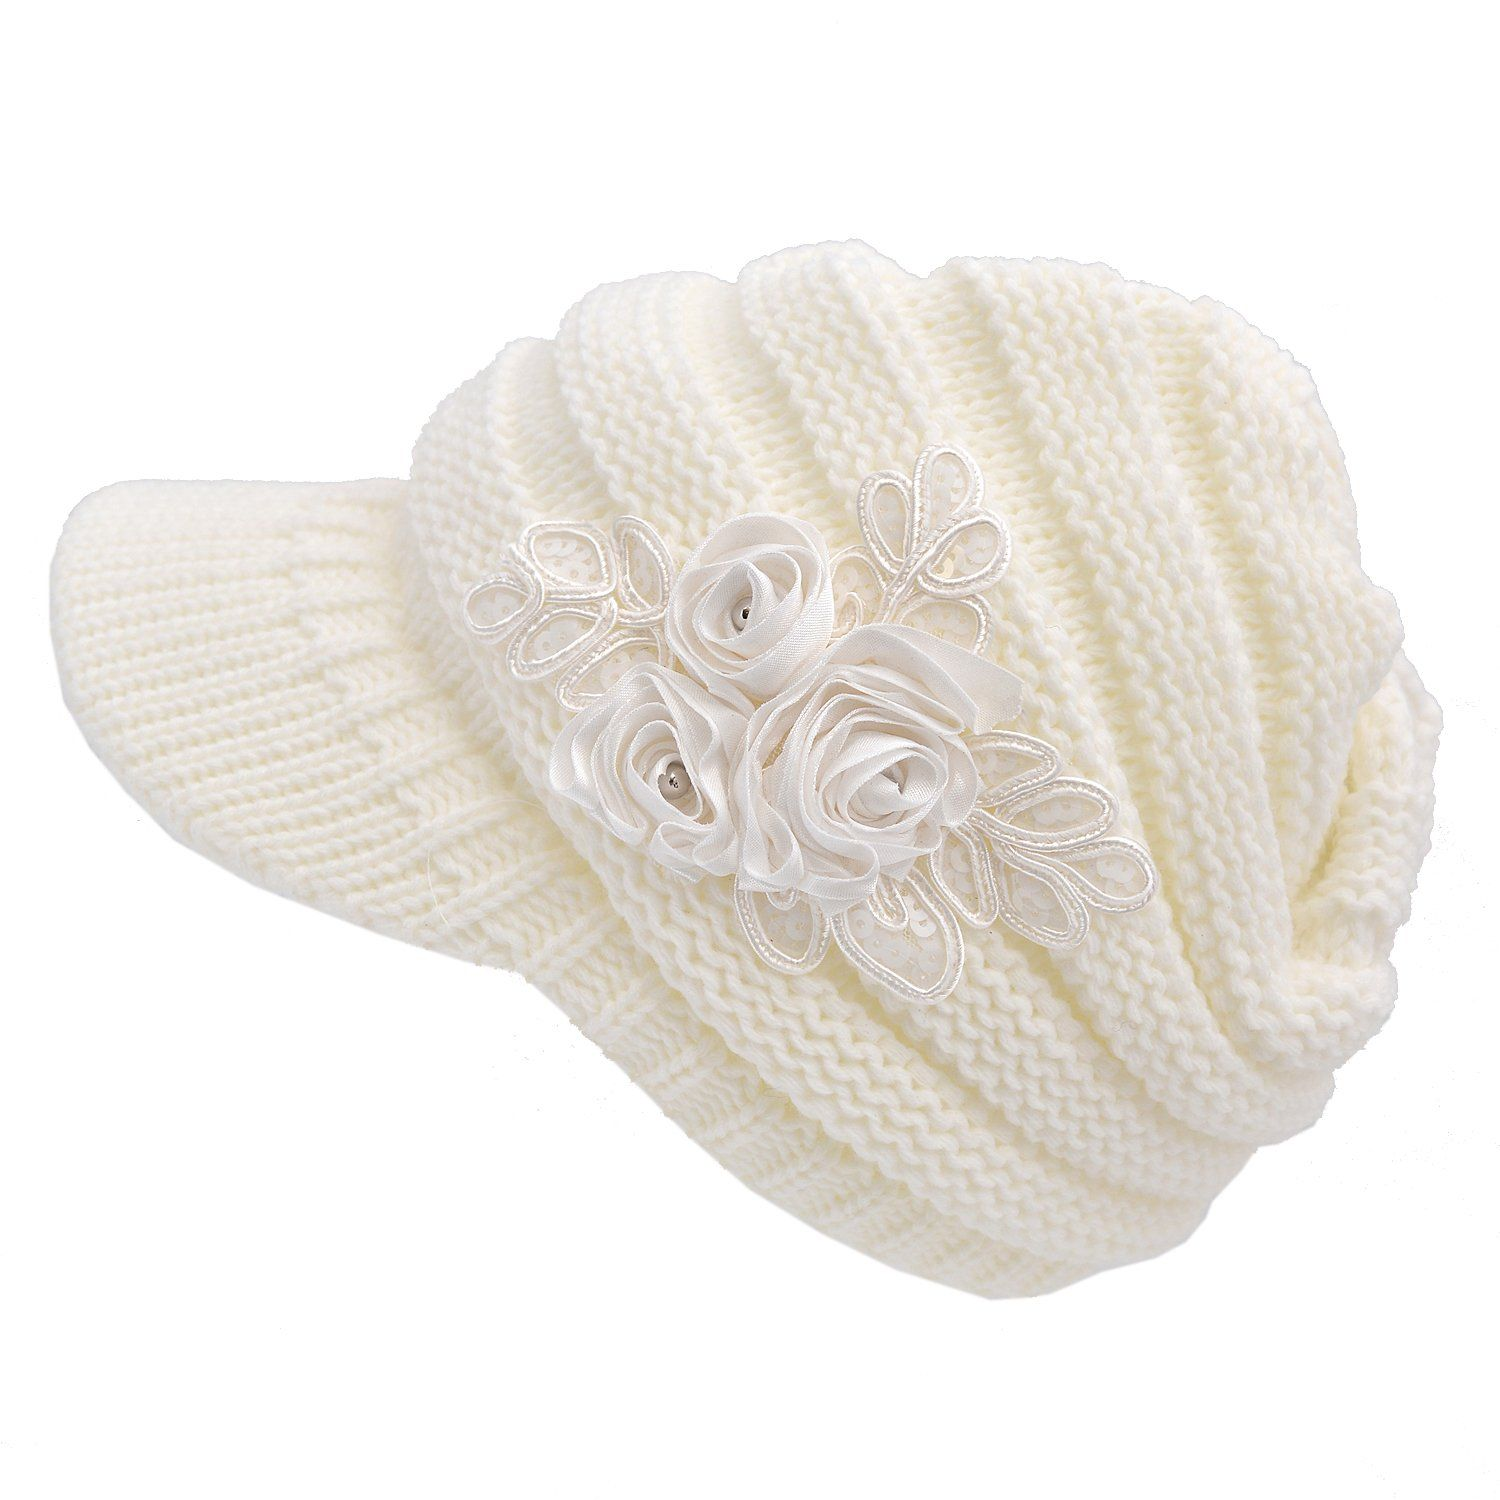 Women S Cable Knit Visor Hat With Flower Accent White Color I Have This In Grey And I Love It So Warm Best Winter Hats Cable Knit Knit Beanie Hat